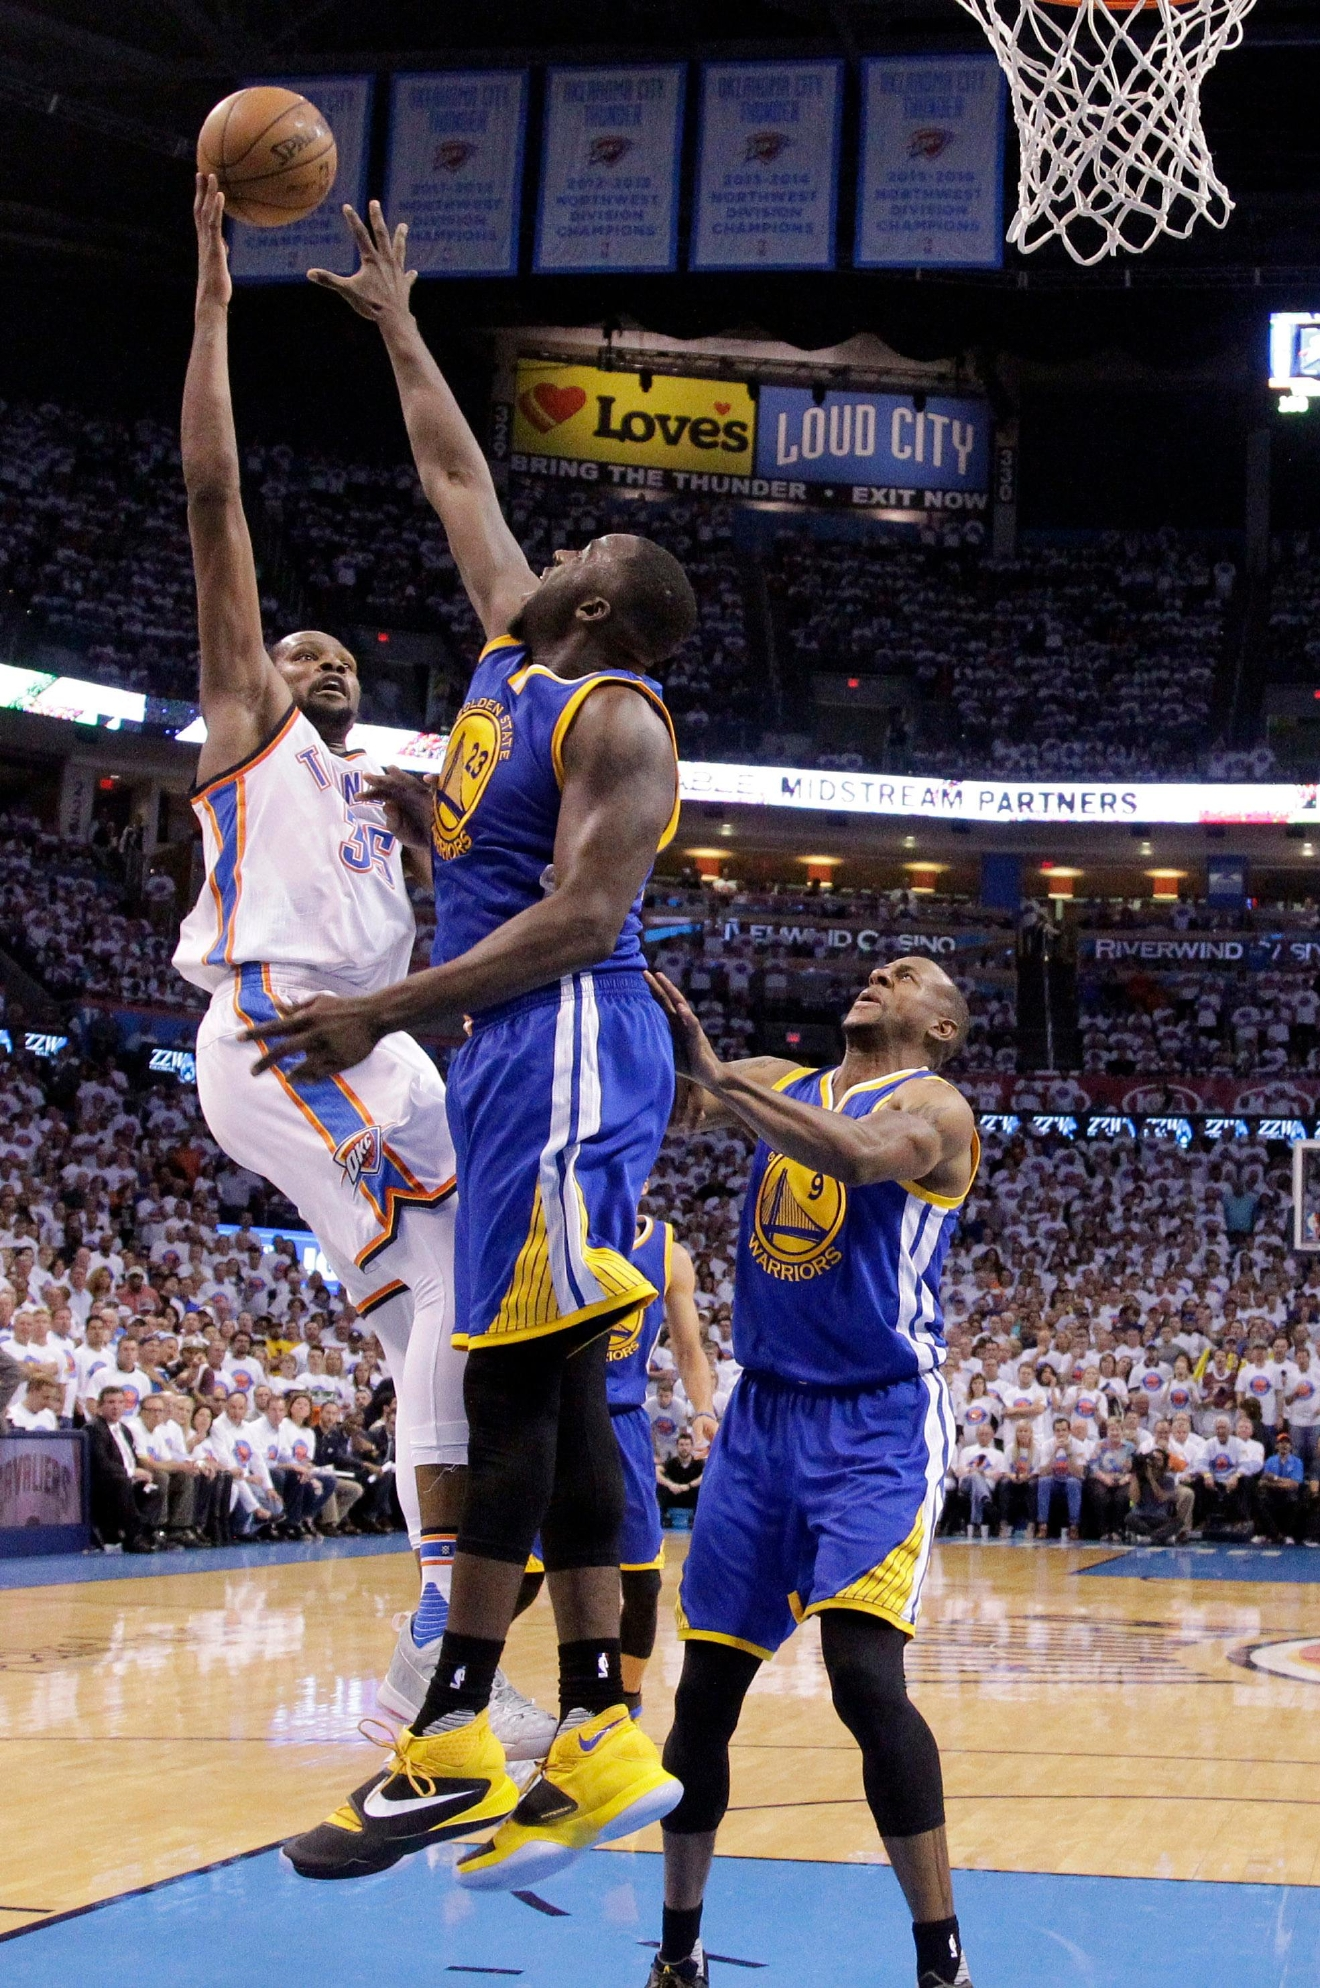 Oklahoma City Thunder forward Kevin Durant (35) shoots as Golden State Warriors forward Draymond Green (23) and forward Andre Iguodala (9) during the second half in Game 4 of the NBA basketball Western Conference finals in Oklahoma City, Tuesday, May 24, 2016. The Thunder won 118-94. (AP Photo/Sue Ogrocki)